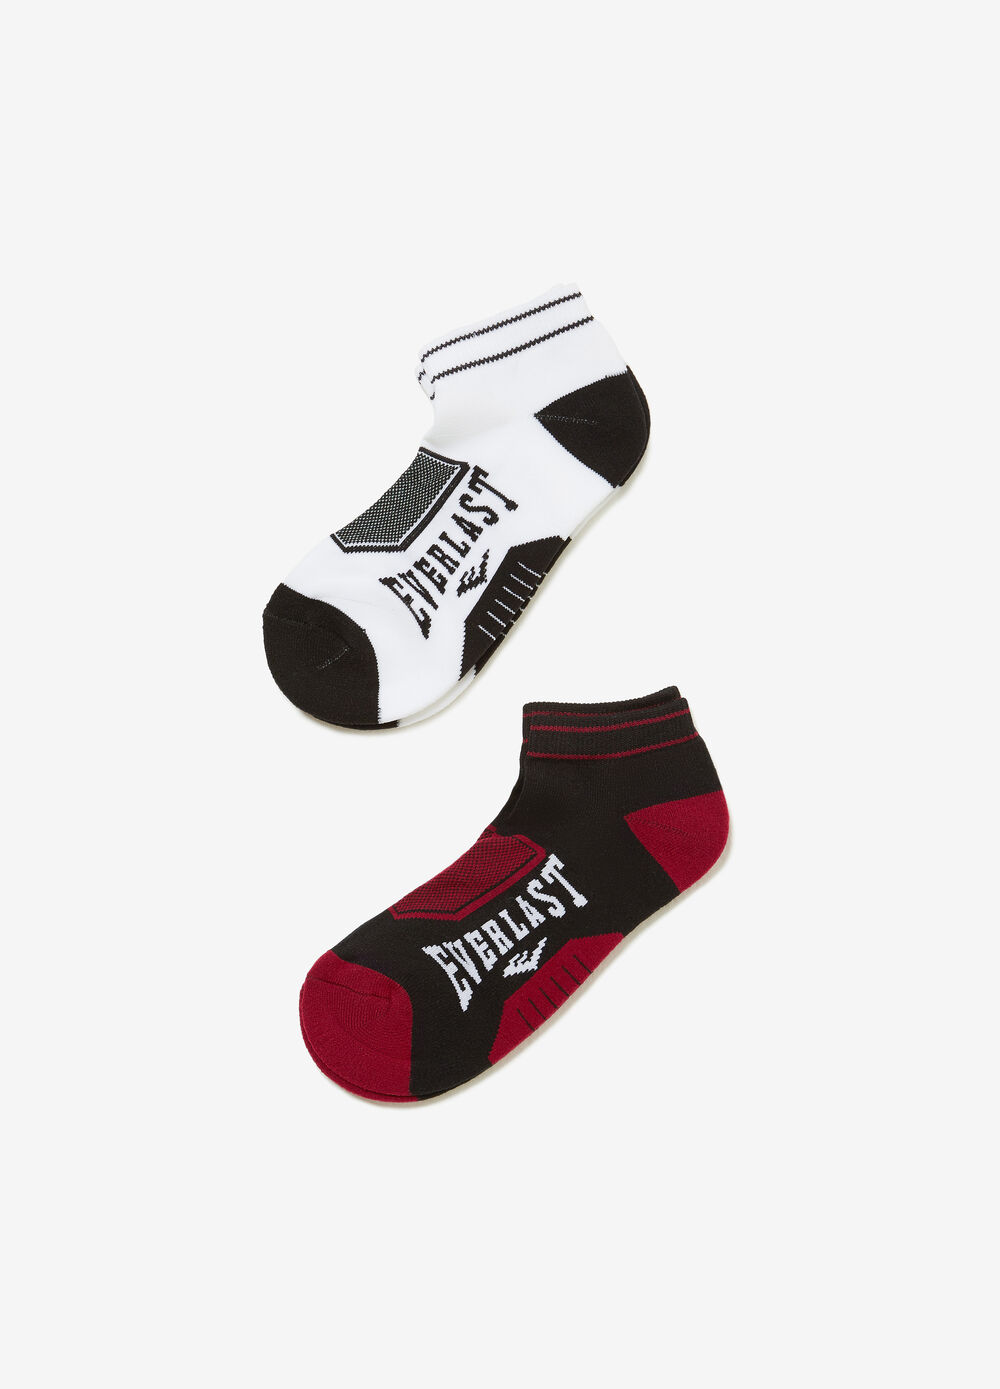 Two-pair pack Everlast stretch sports socks